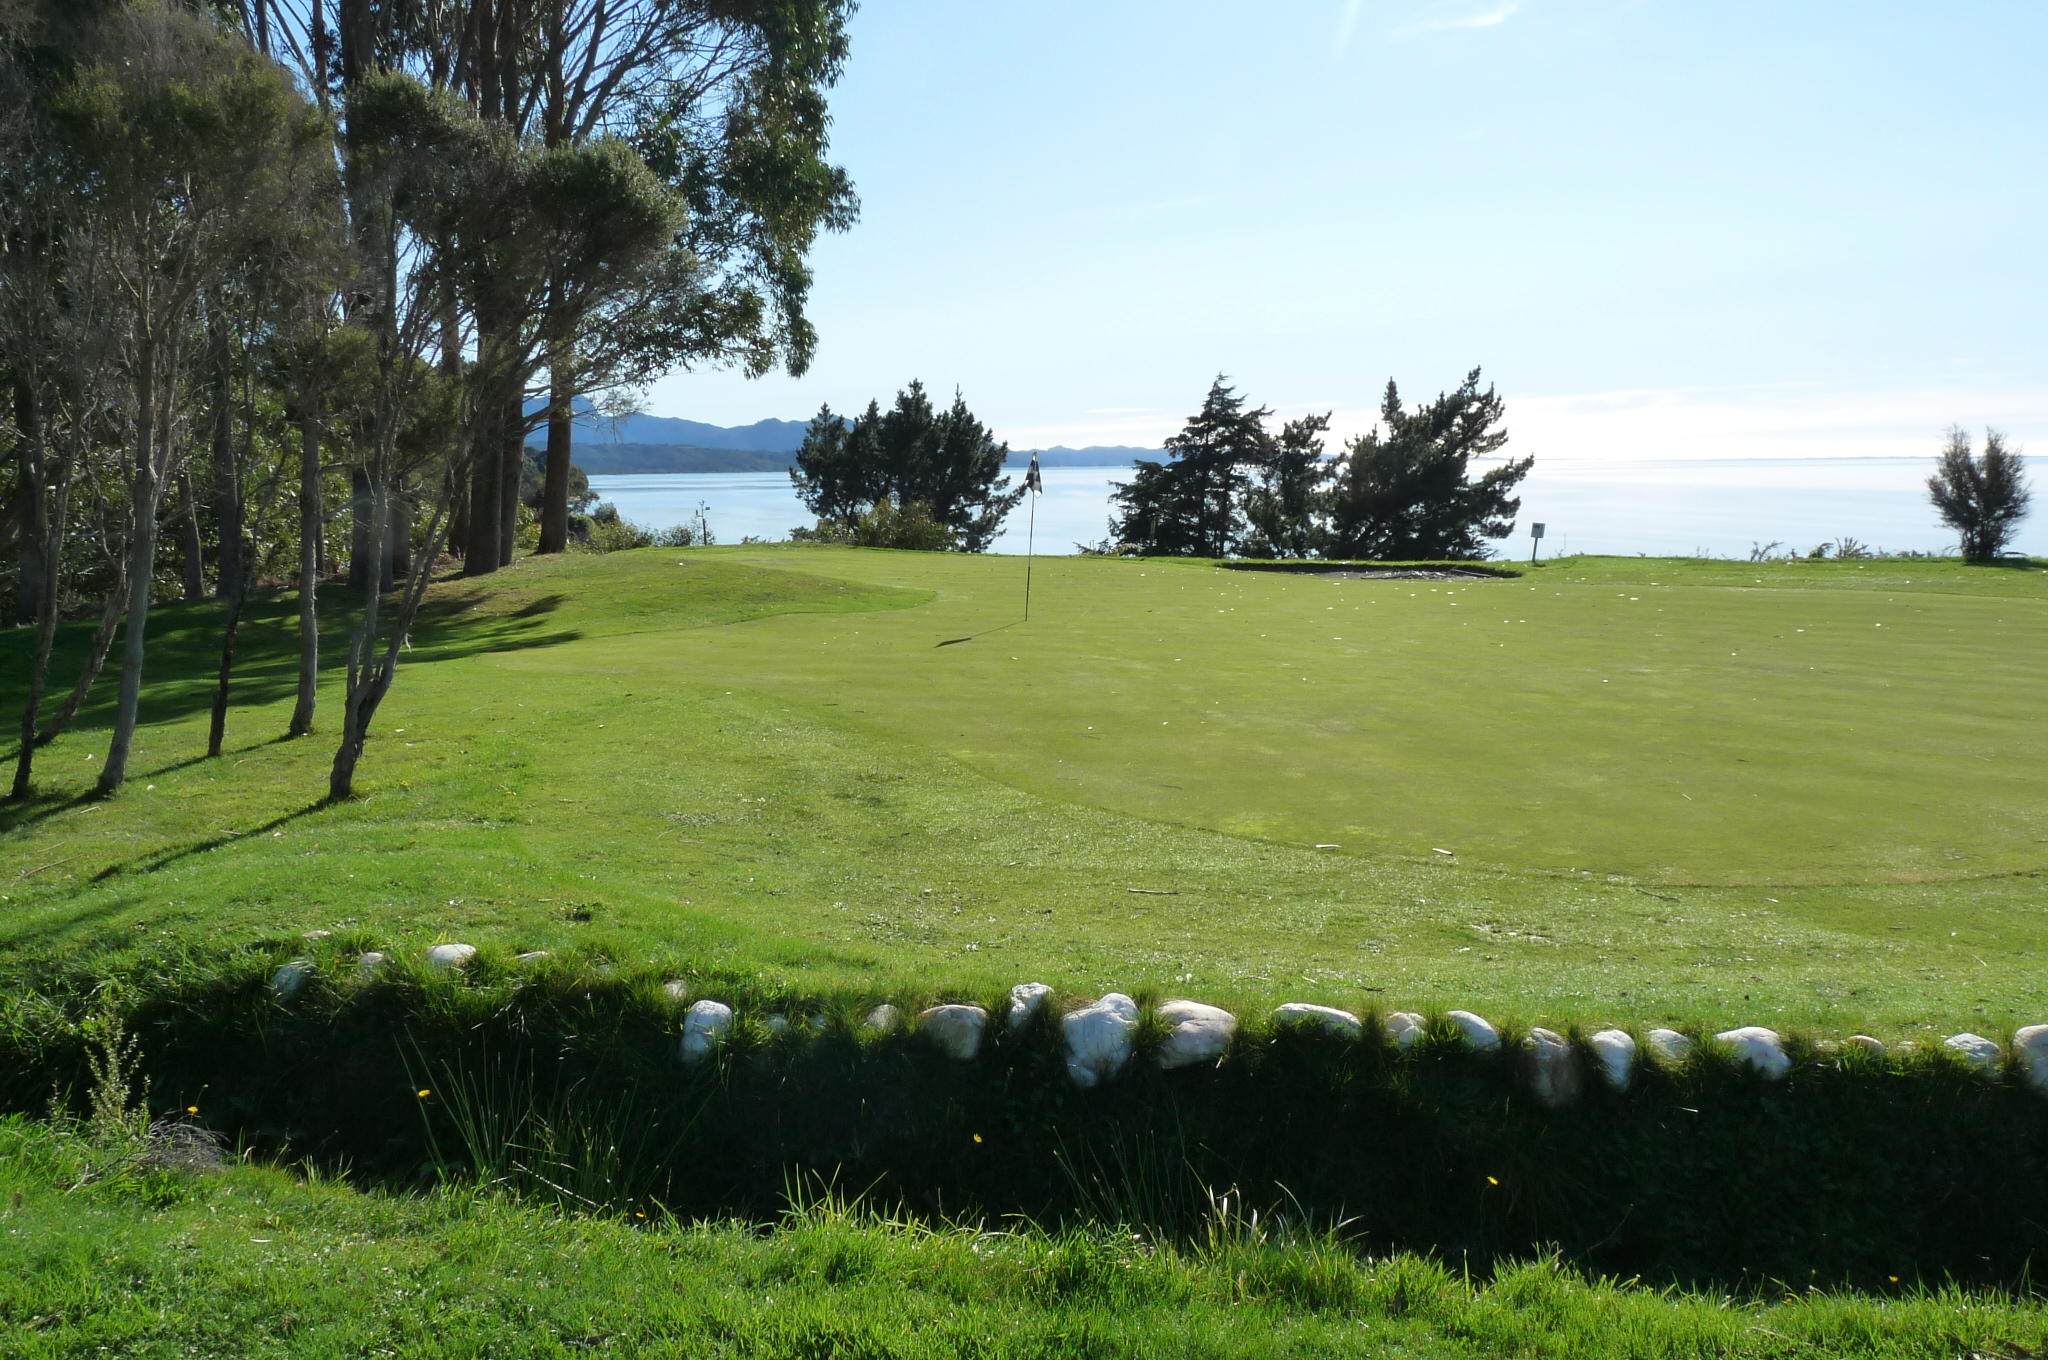 View from behind the green